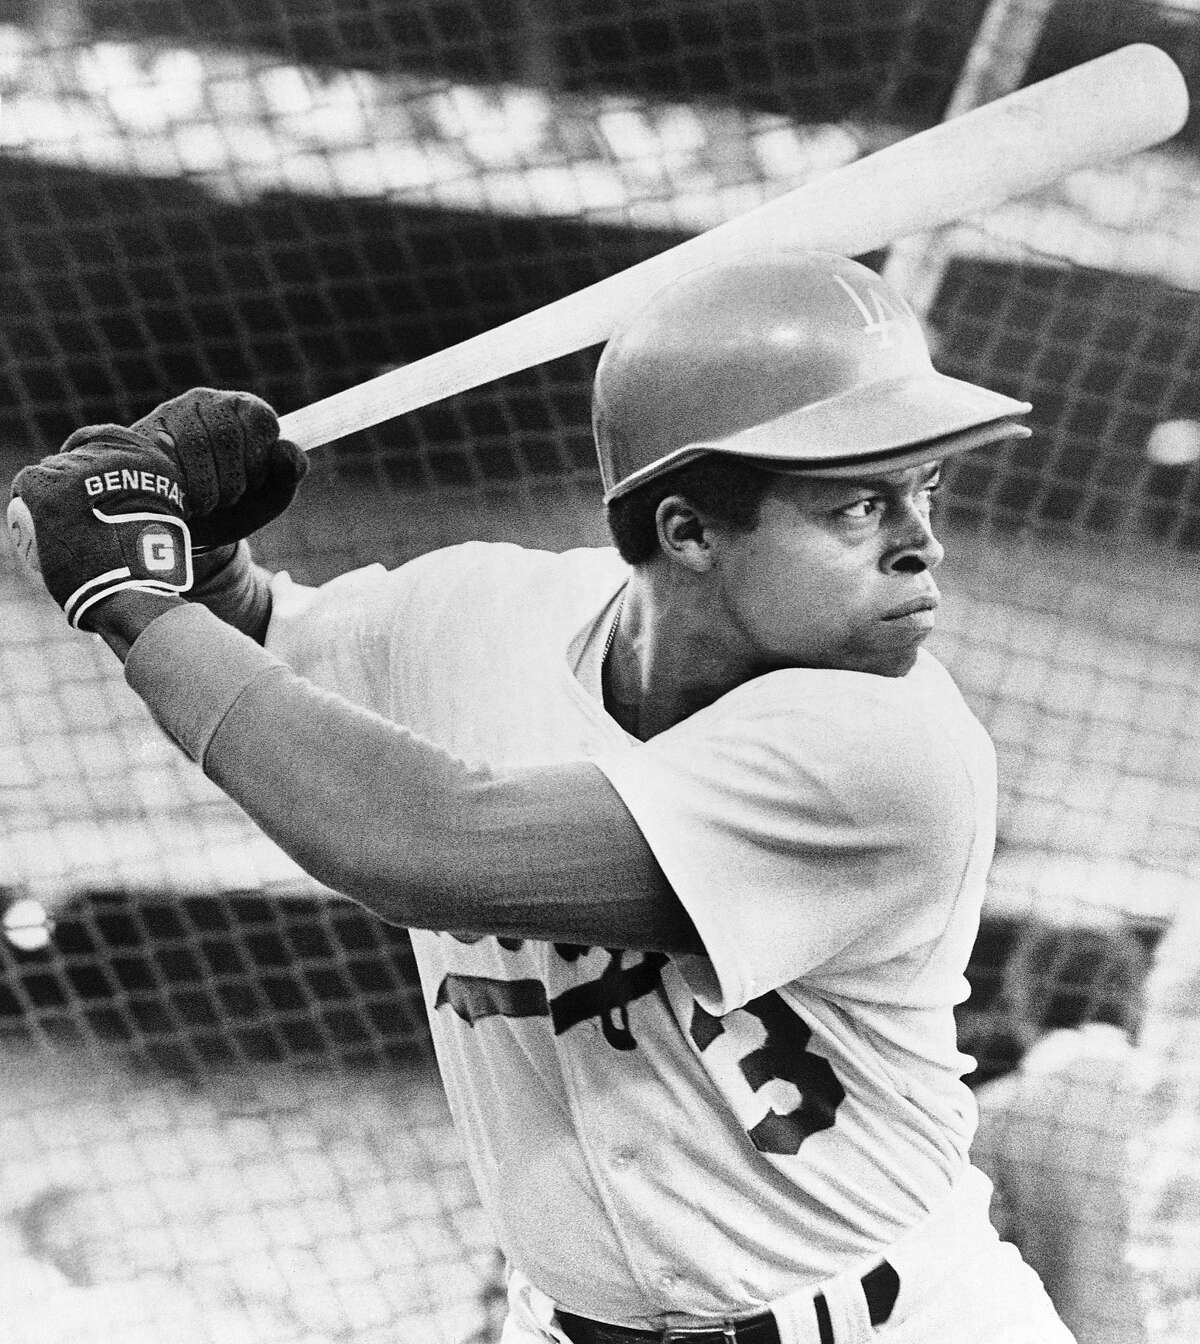 Glenn Burke taking some batting practice at Dodger Stadium in Los Angeles on Monday, Oct. 4, 1977 was given the call to start at center field for the Los Angeles Dodgers on Tuesday when they open the National League Championships against the Philadelphia Phillies. Burke got the call when Rick Monday, the Dodgers regular center fielder, came up with a sore back that has been bothering him all season. (AP Photo/LM)